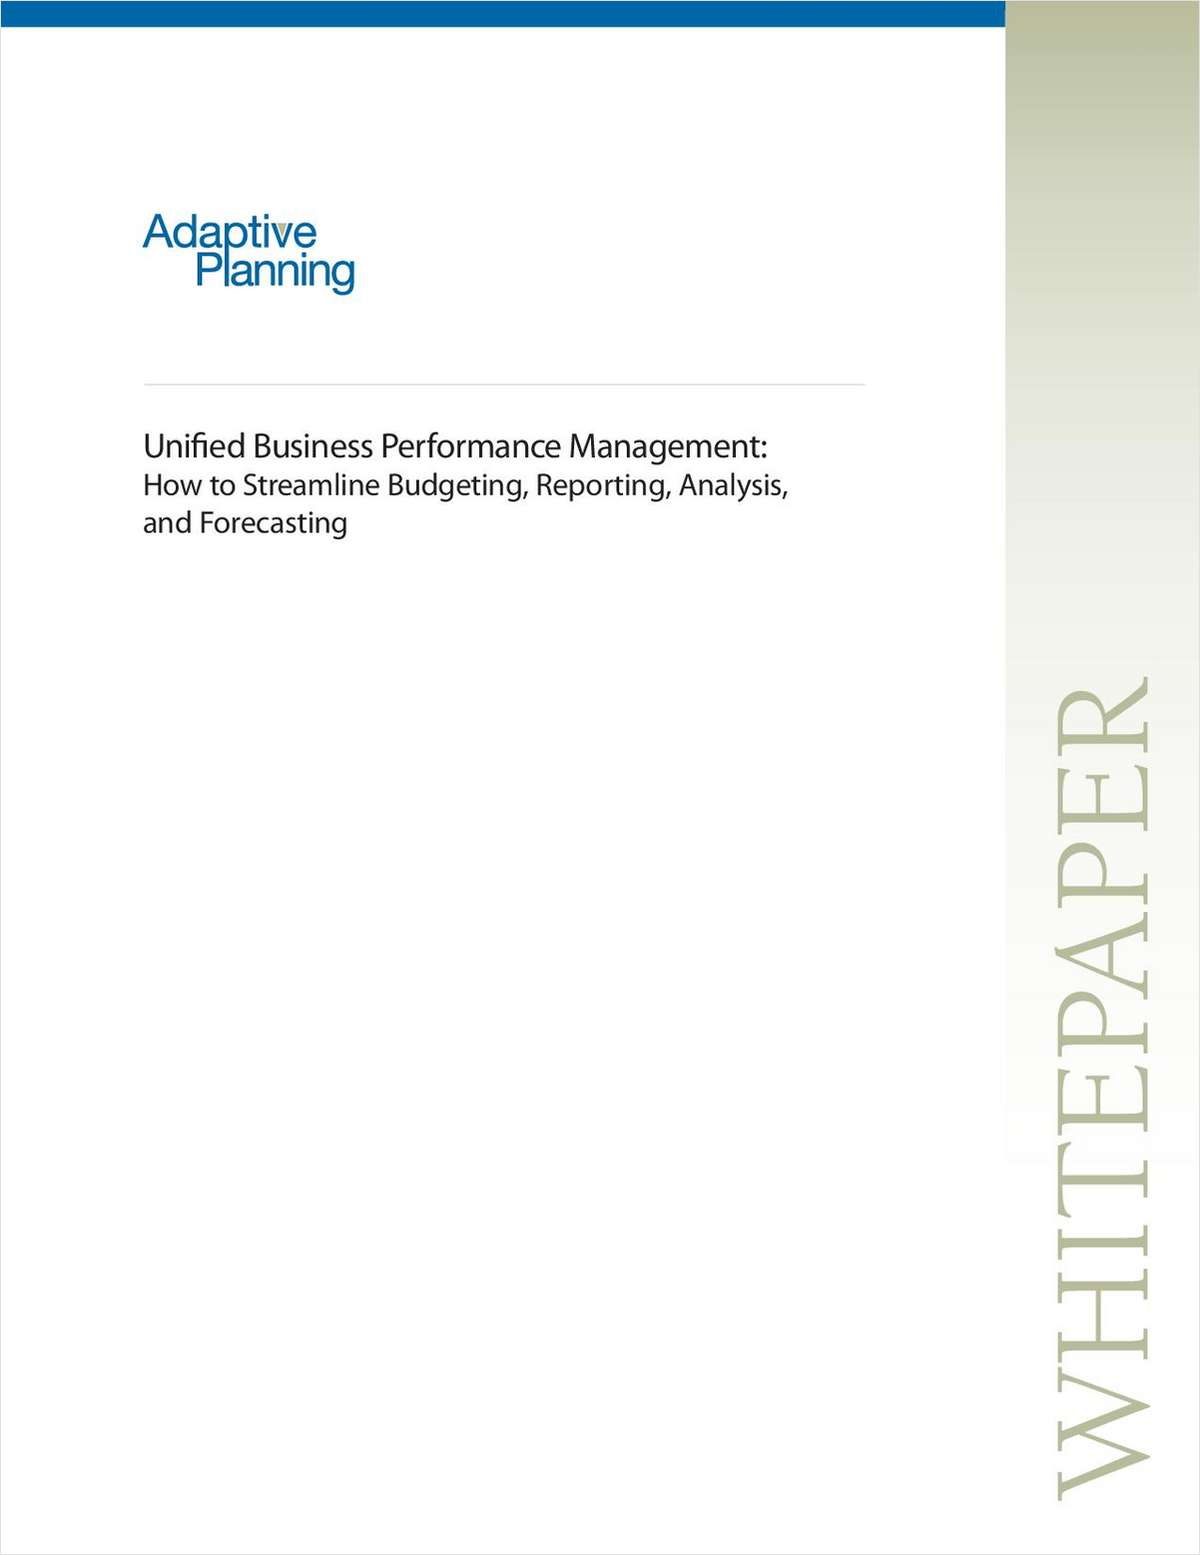 Unified Business Performance Management: How to Streamline Budgeting, Reporting, Analysis and Forecasting